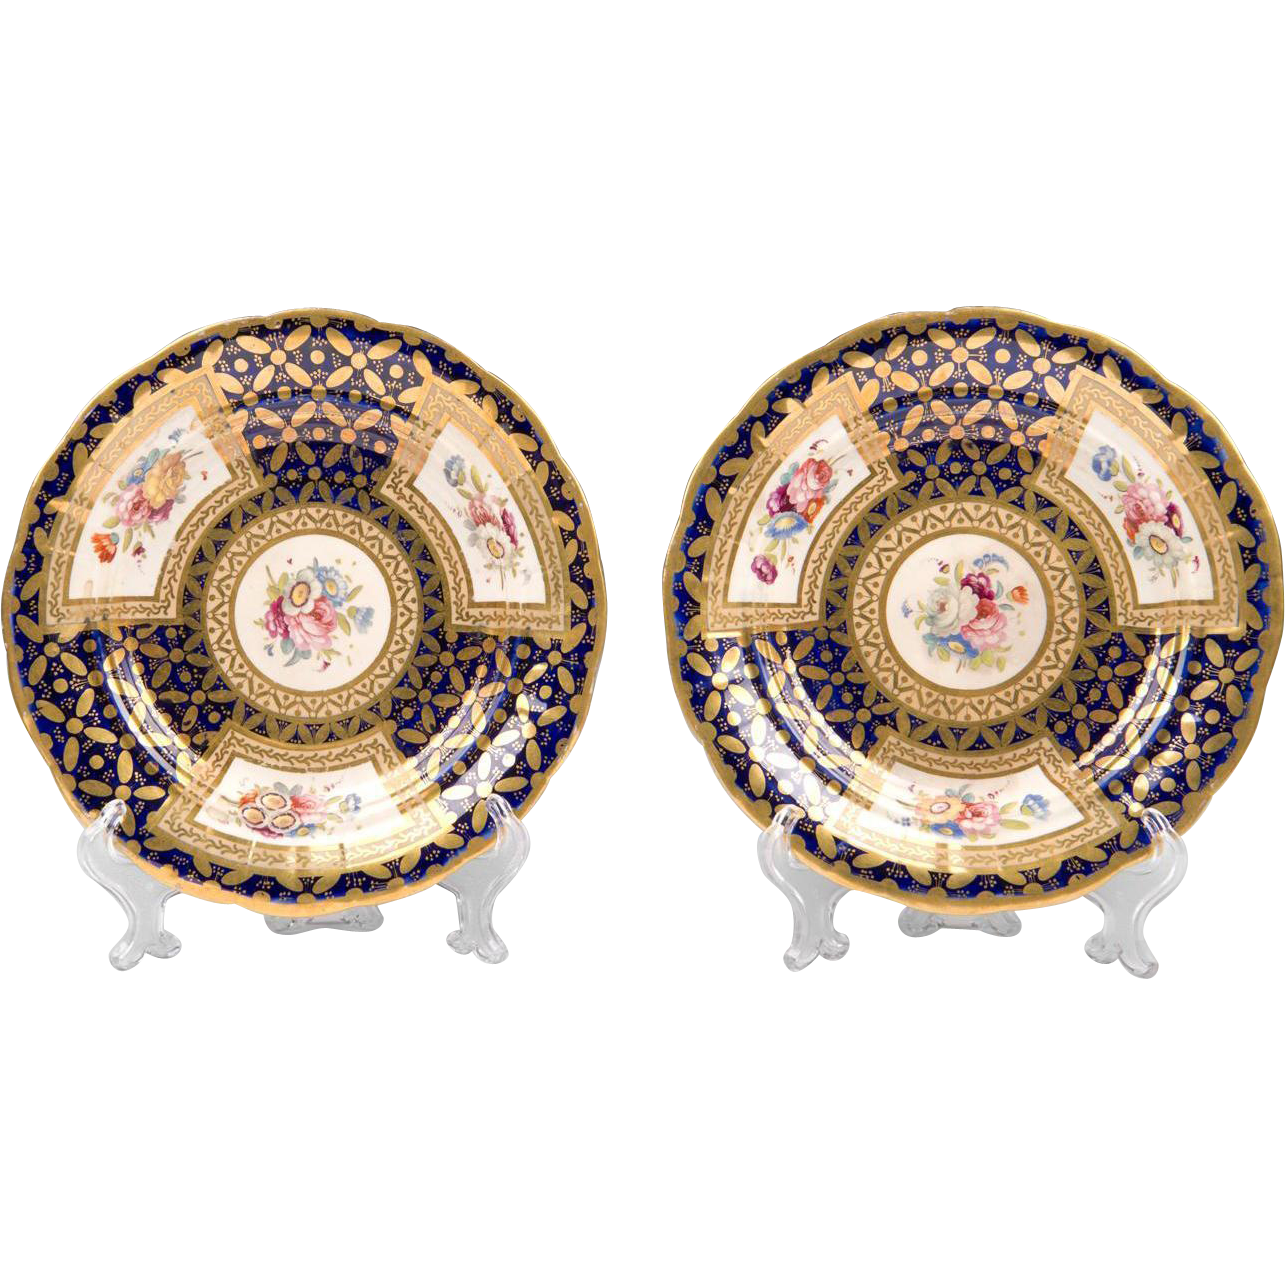 Pair of Early 19th C. Cobalt Botanical Hand Painted Dessert Dishes